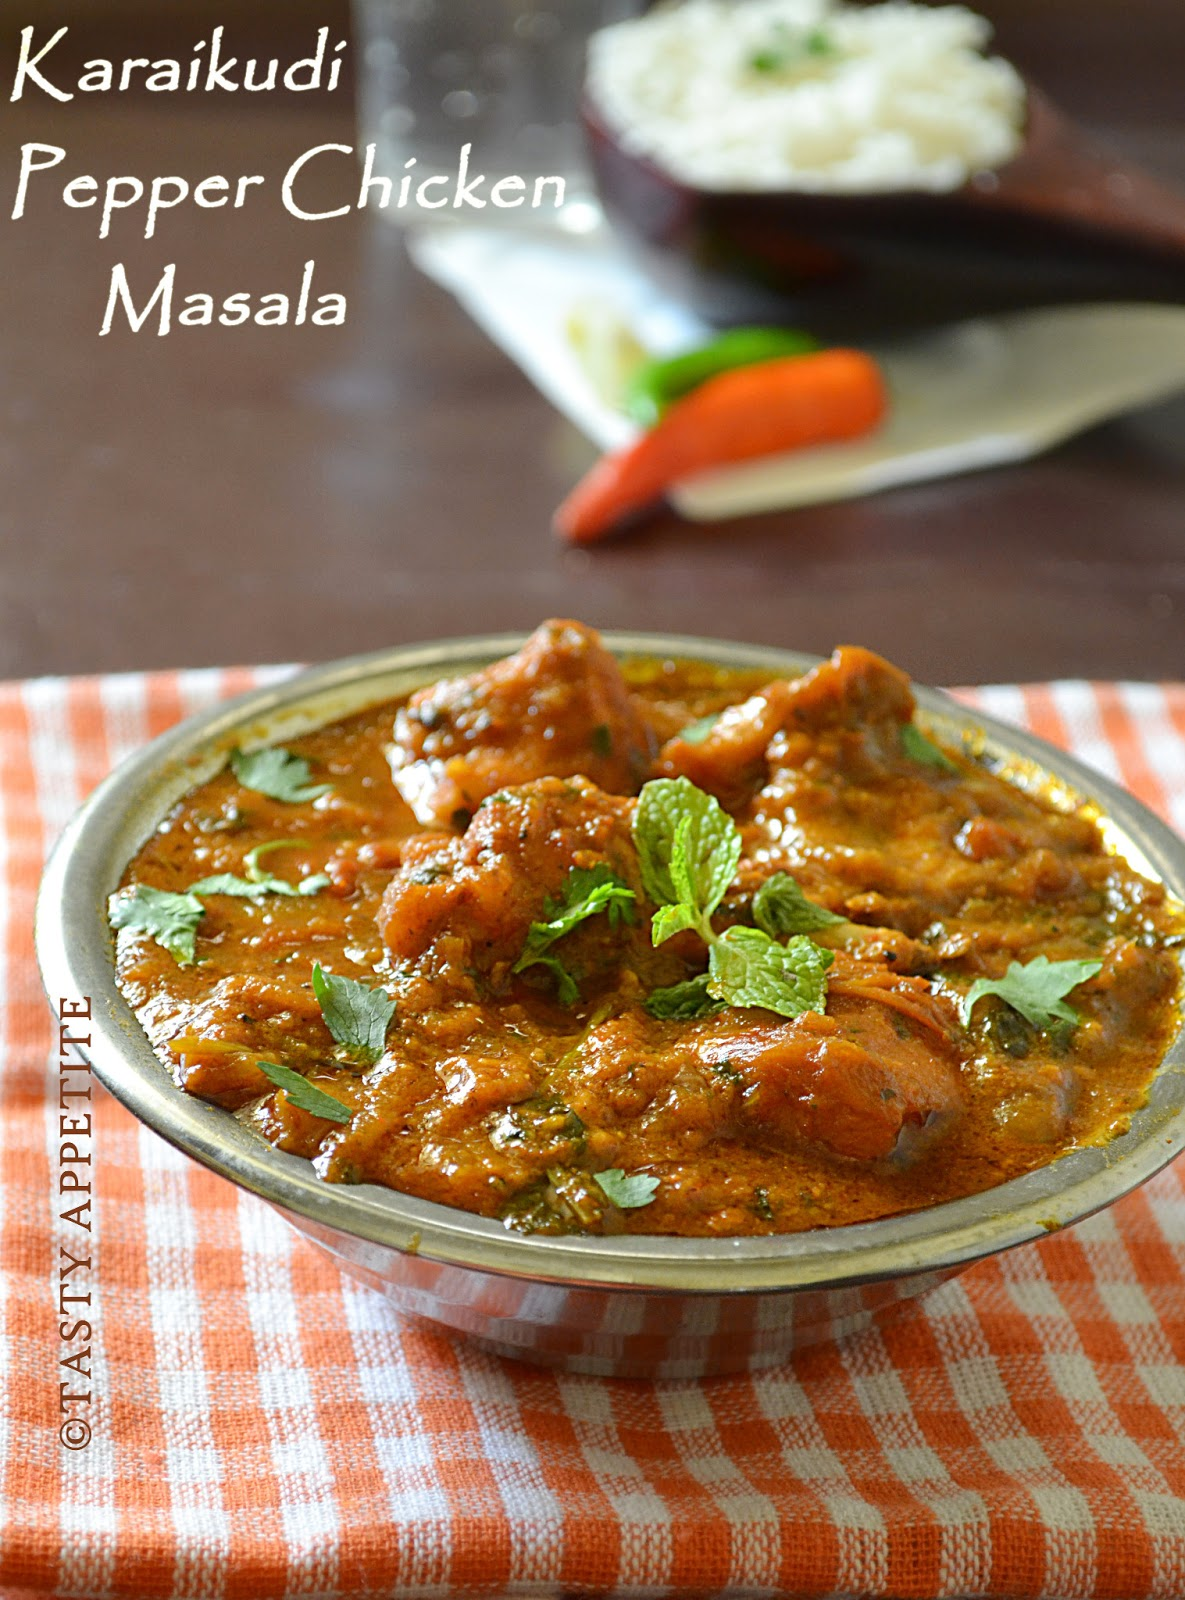 How To Make Chettinad Pepper Chicken Masala Karaikudi